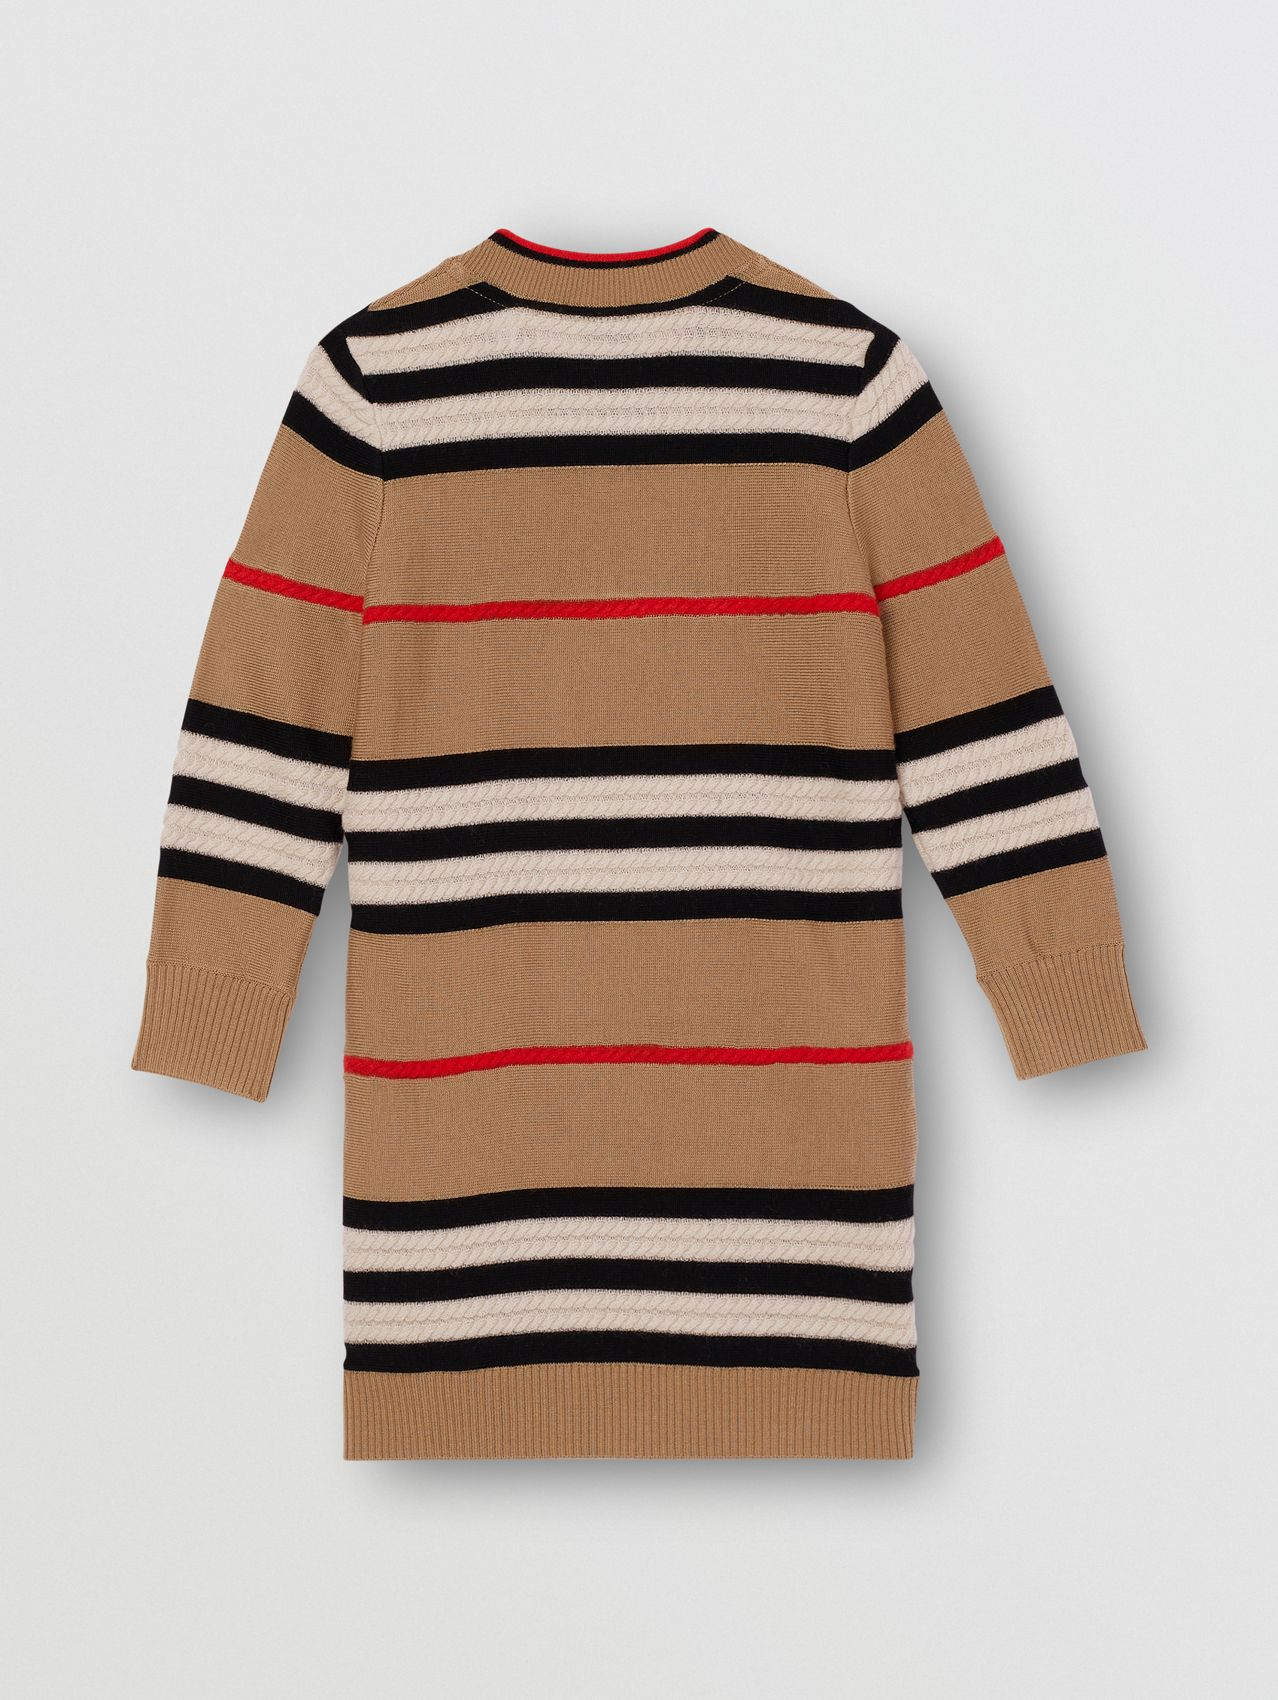 Icon Stripe Wool Cashmere Sweater Dress in Archive Beige